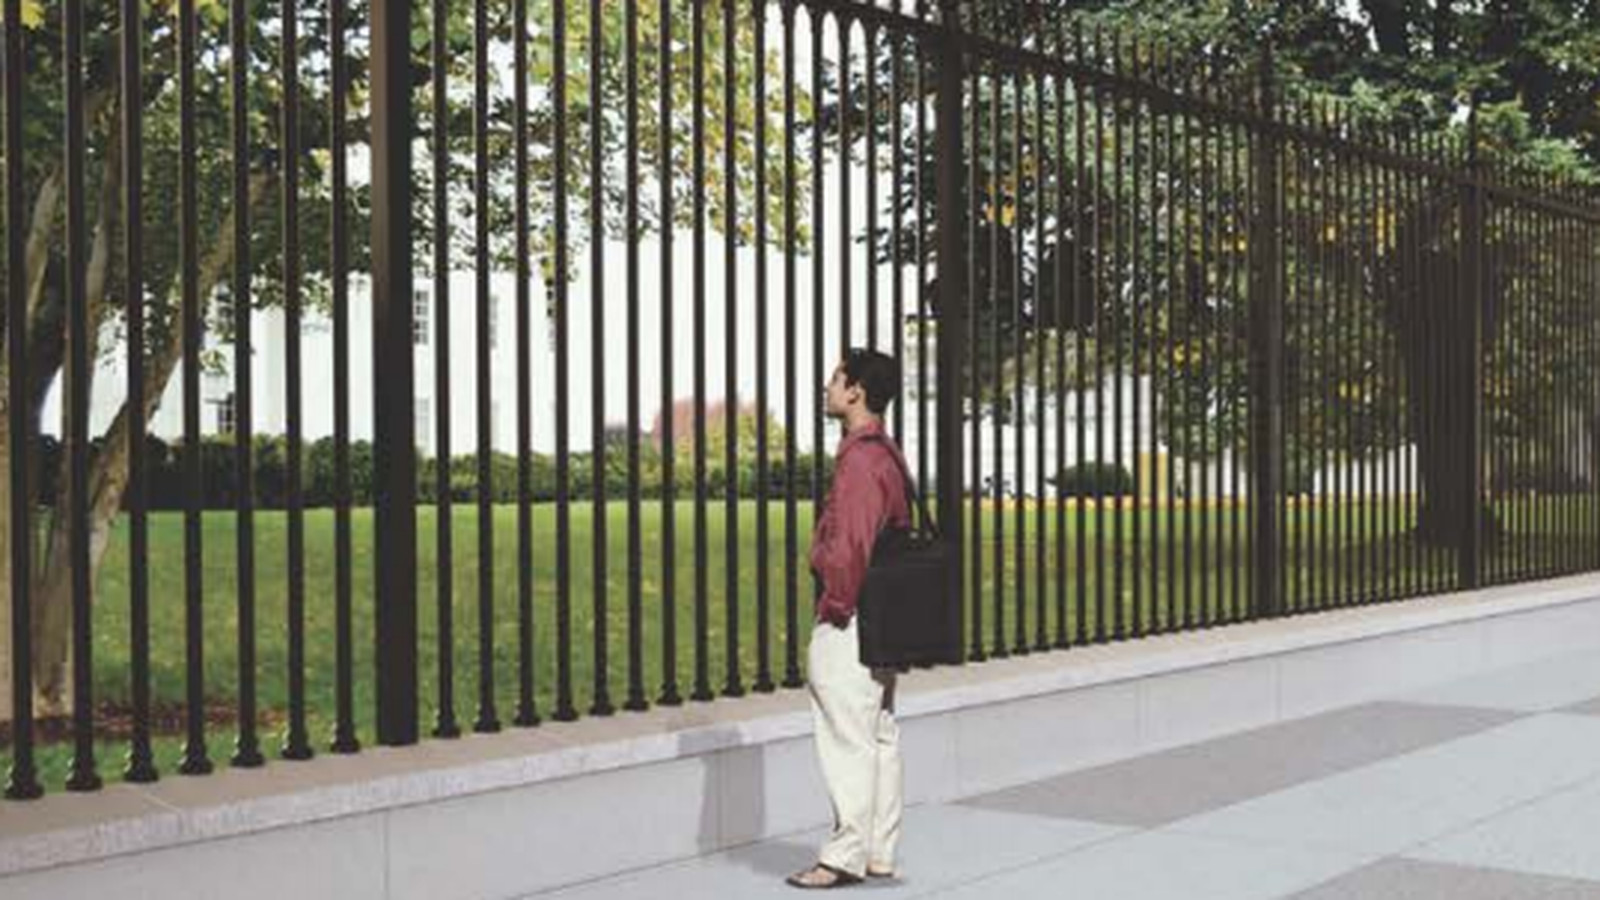 White House Perimeter Fence Preliminary Drawings